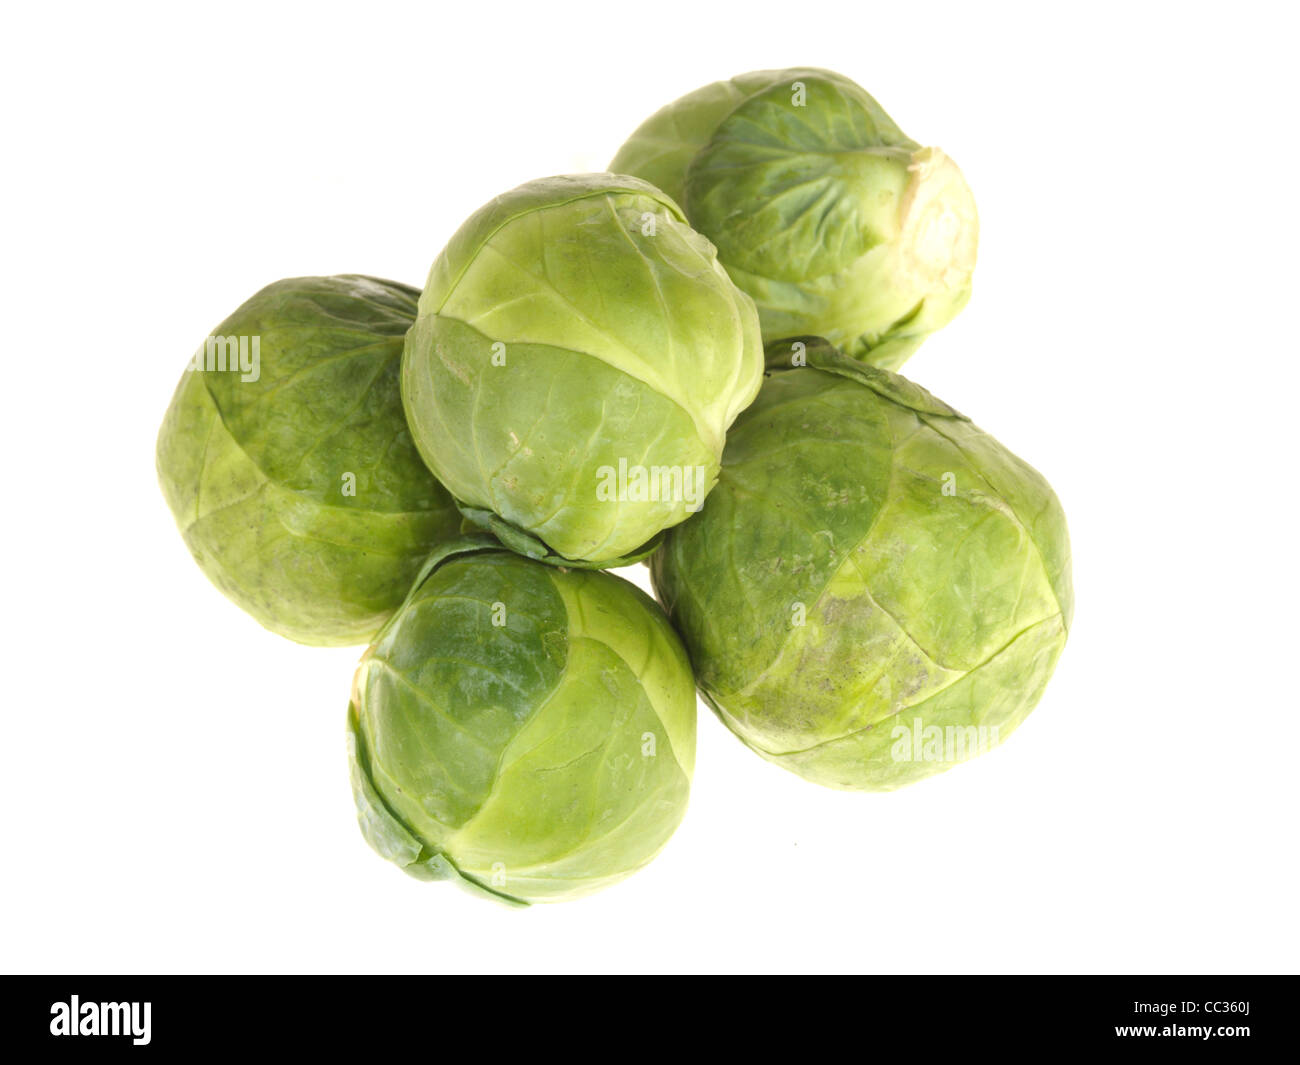 Fresh Healthy Raw Uncooked Brussel Sprouts Vegetables Against A White Background With No People And Copy Space Stock Photo